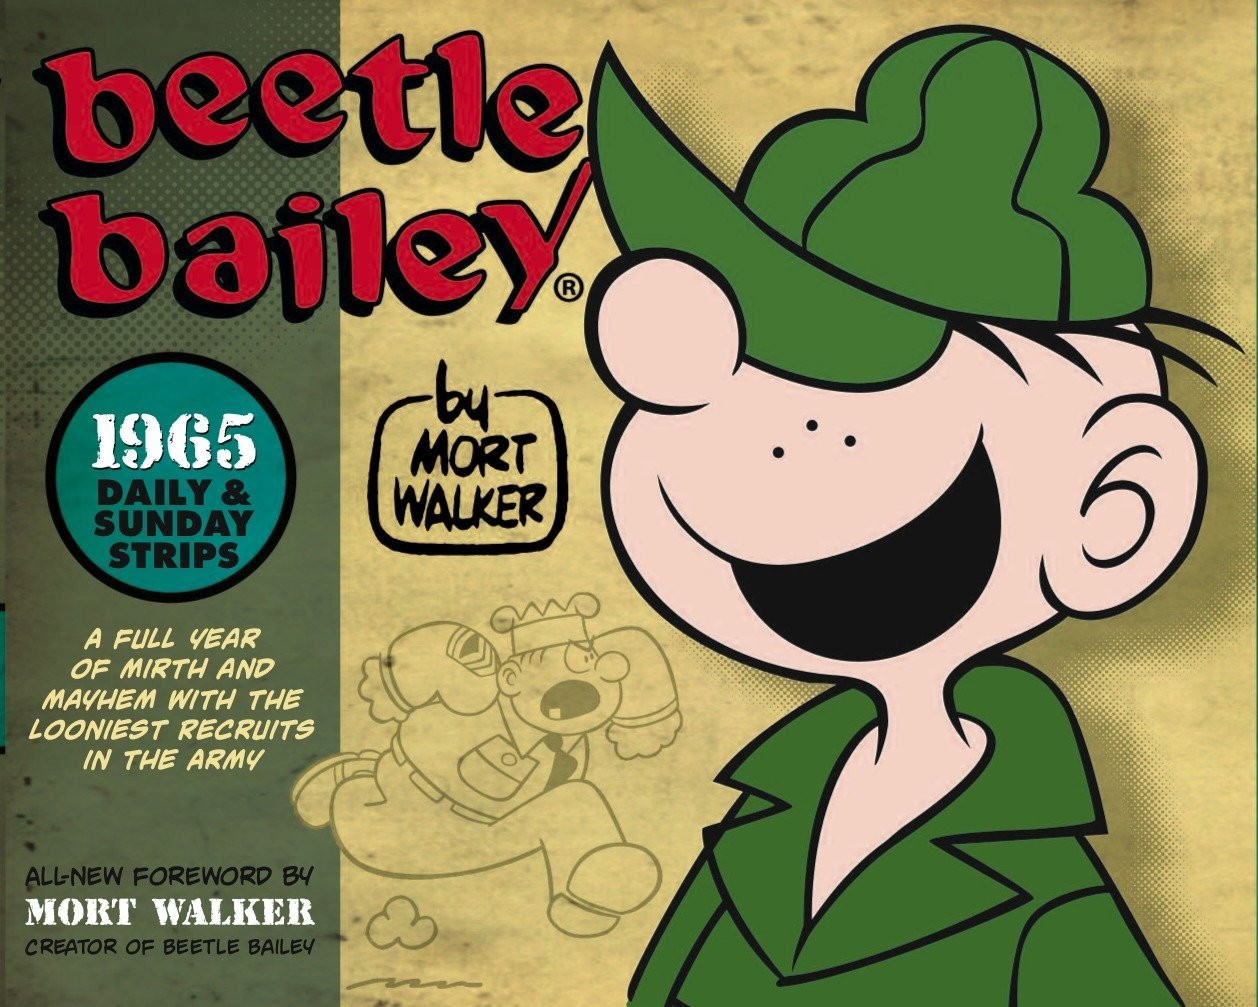 beetle bailey the daily sunday strips 1965 mort walker brian walker 9781848567061 amazoncom books